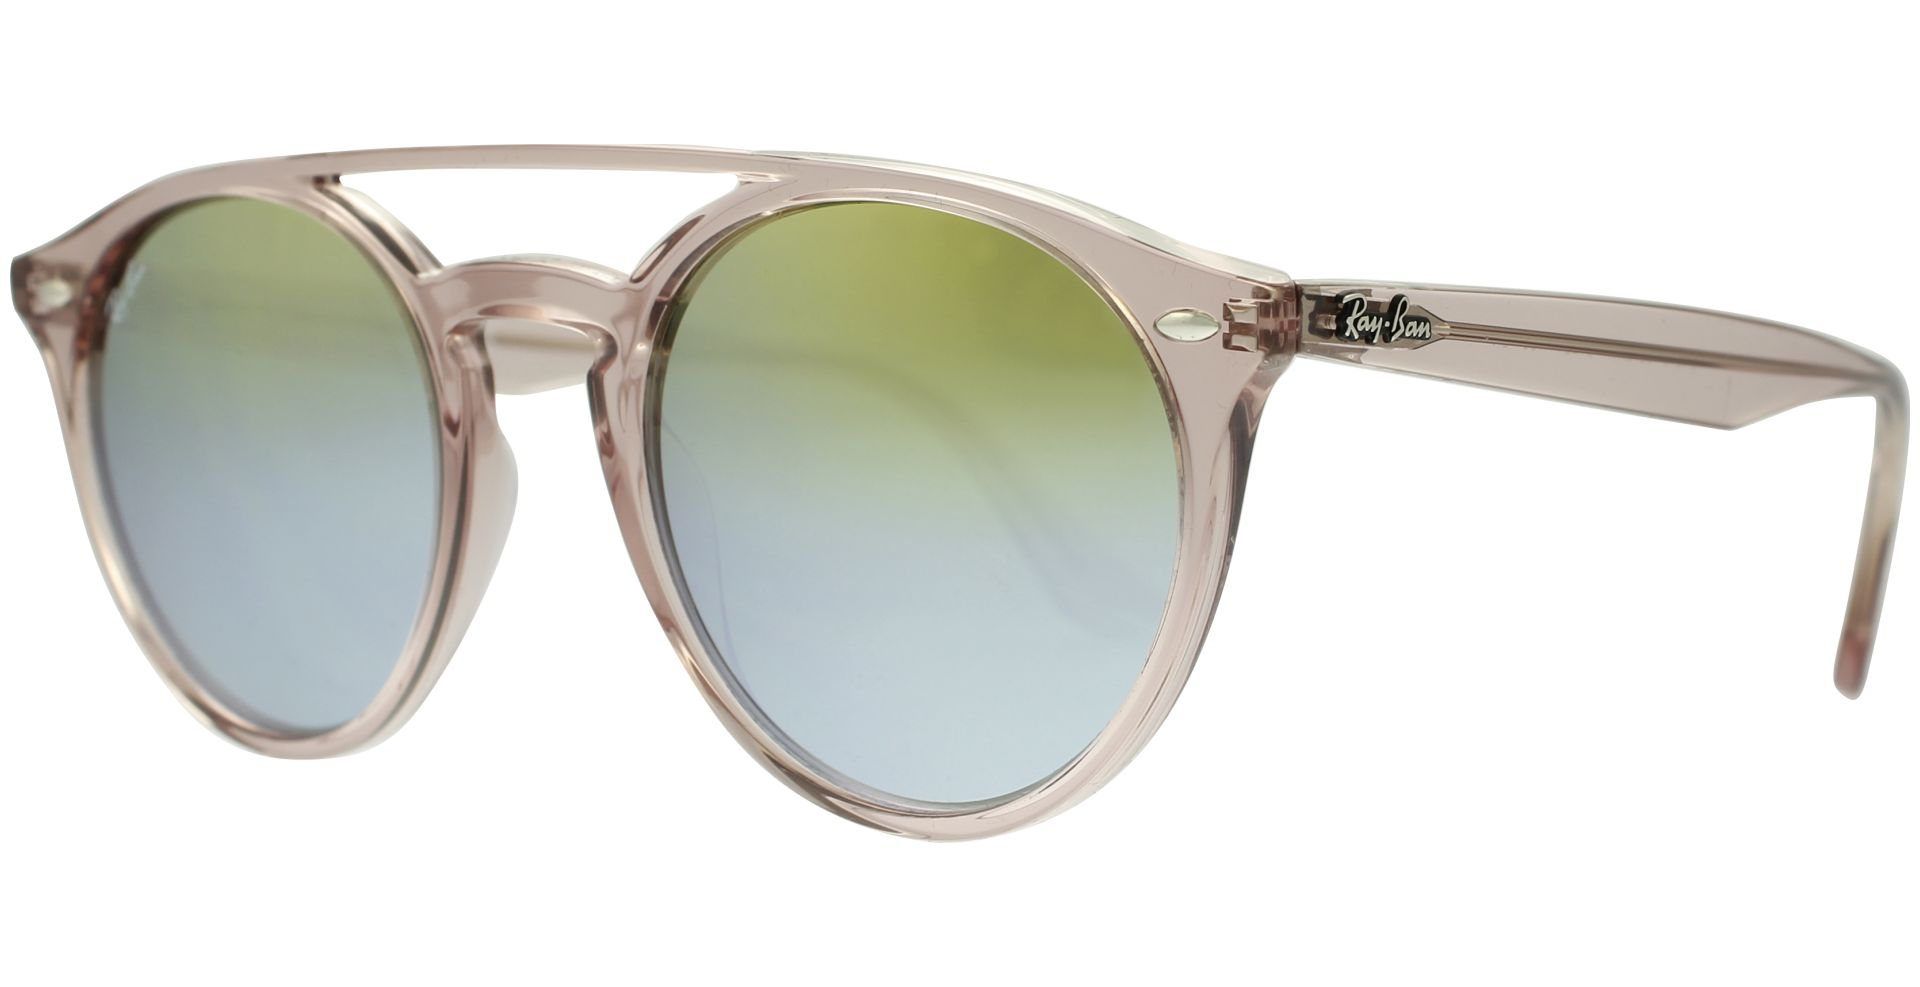 Ray-Ban RB4279 Sonnenbrille Rosa 6279A7 51mm 76TOhJL9